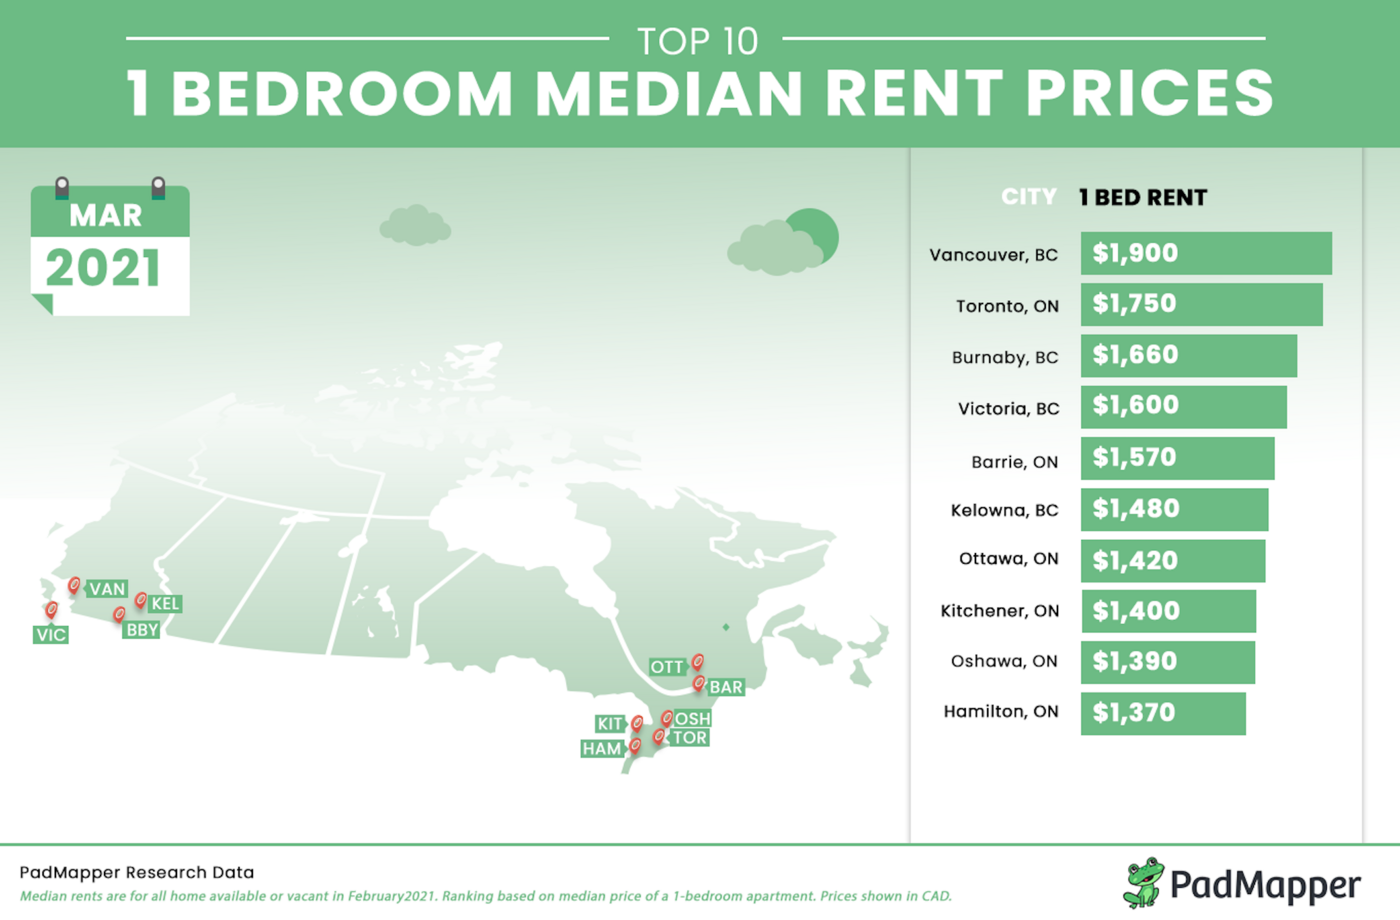 1 Bed Median Rent Prices